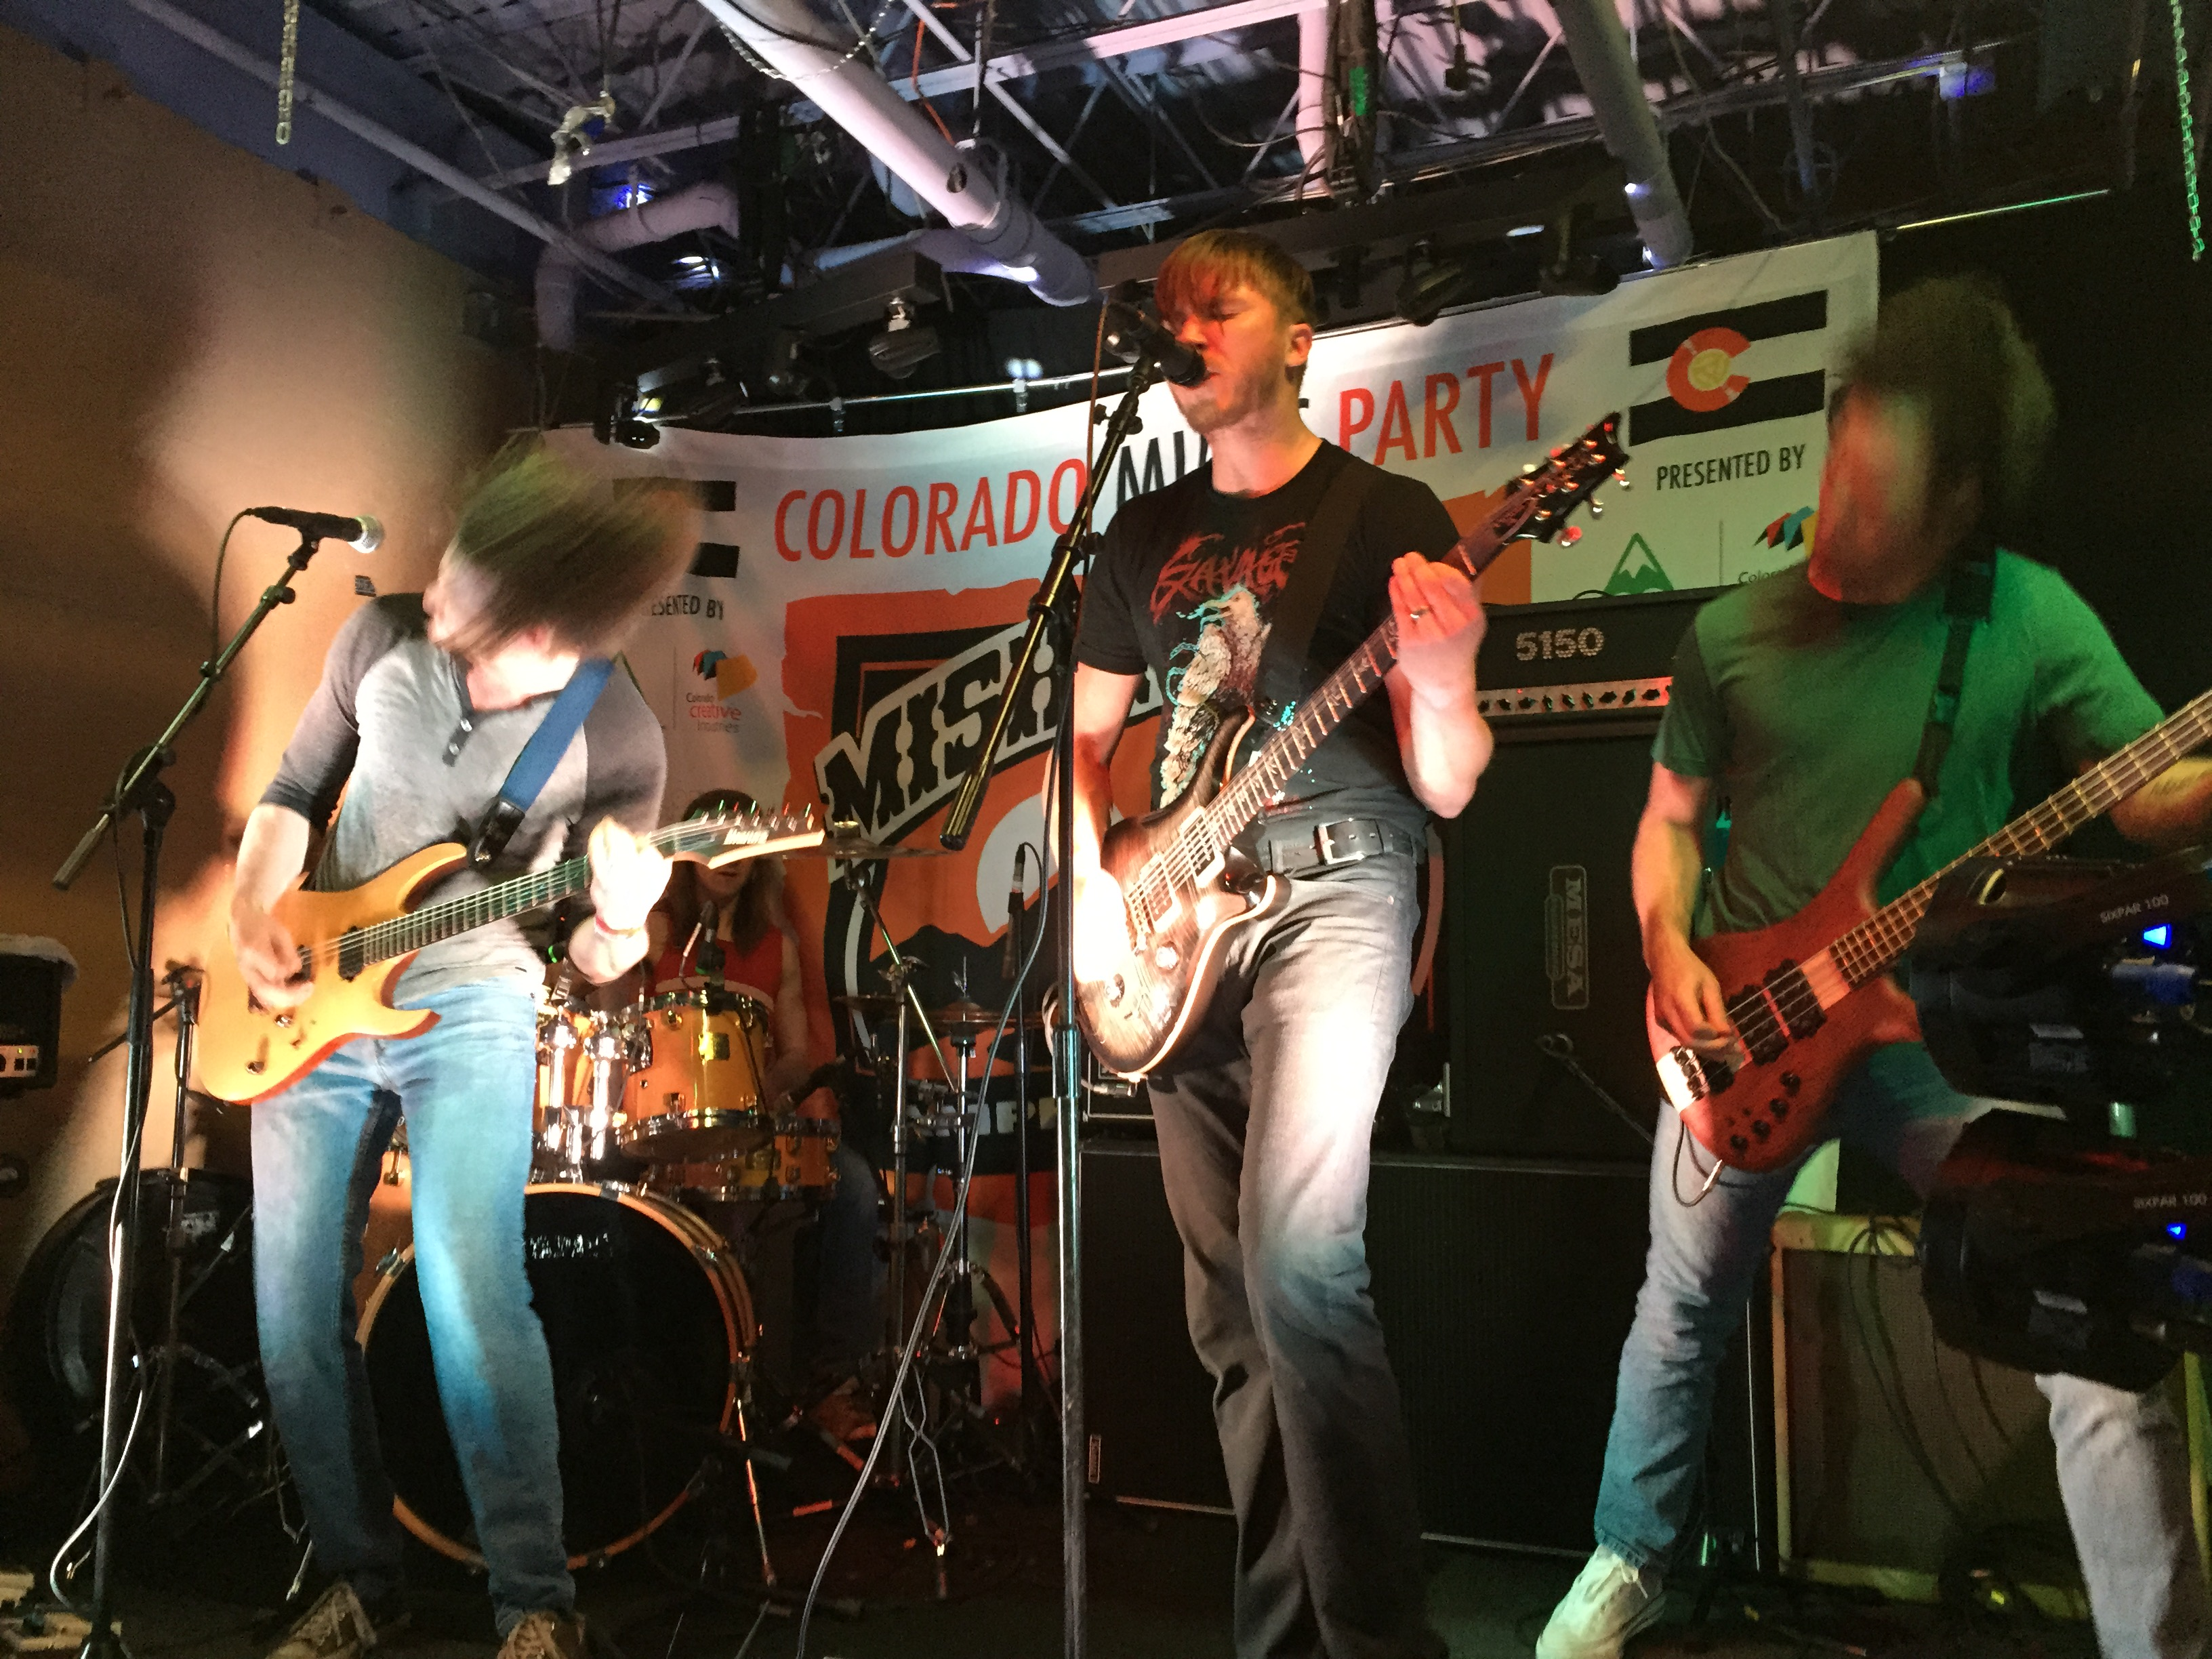 No Fair Fights perform at the Colorado Music Party during SXSW 2015 in Austin, Texas. Photo by Quentin Young